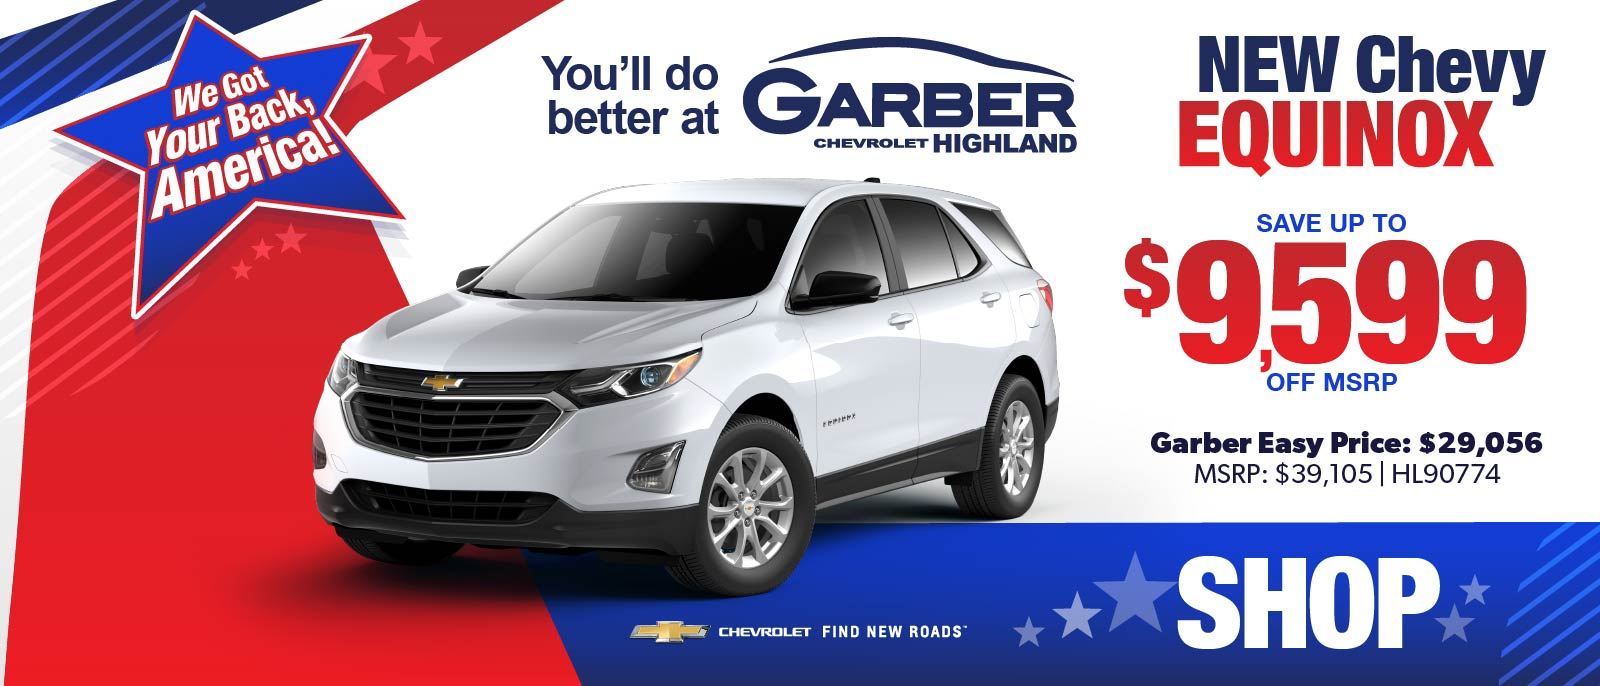 NEW Chevy Equinox - SAVE up to $9599 off MSRP | Garber Easy Price: $29,056 | MSRP $39,105 #HL90774